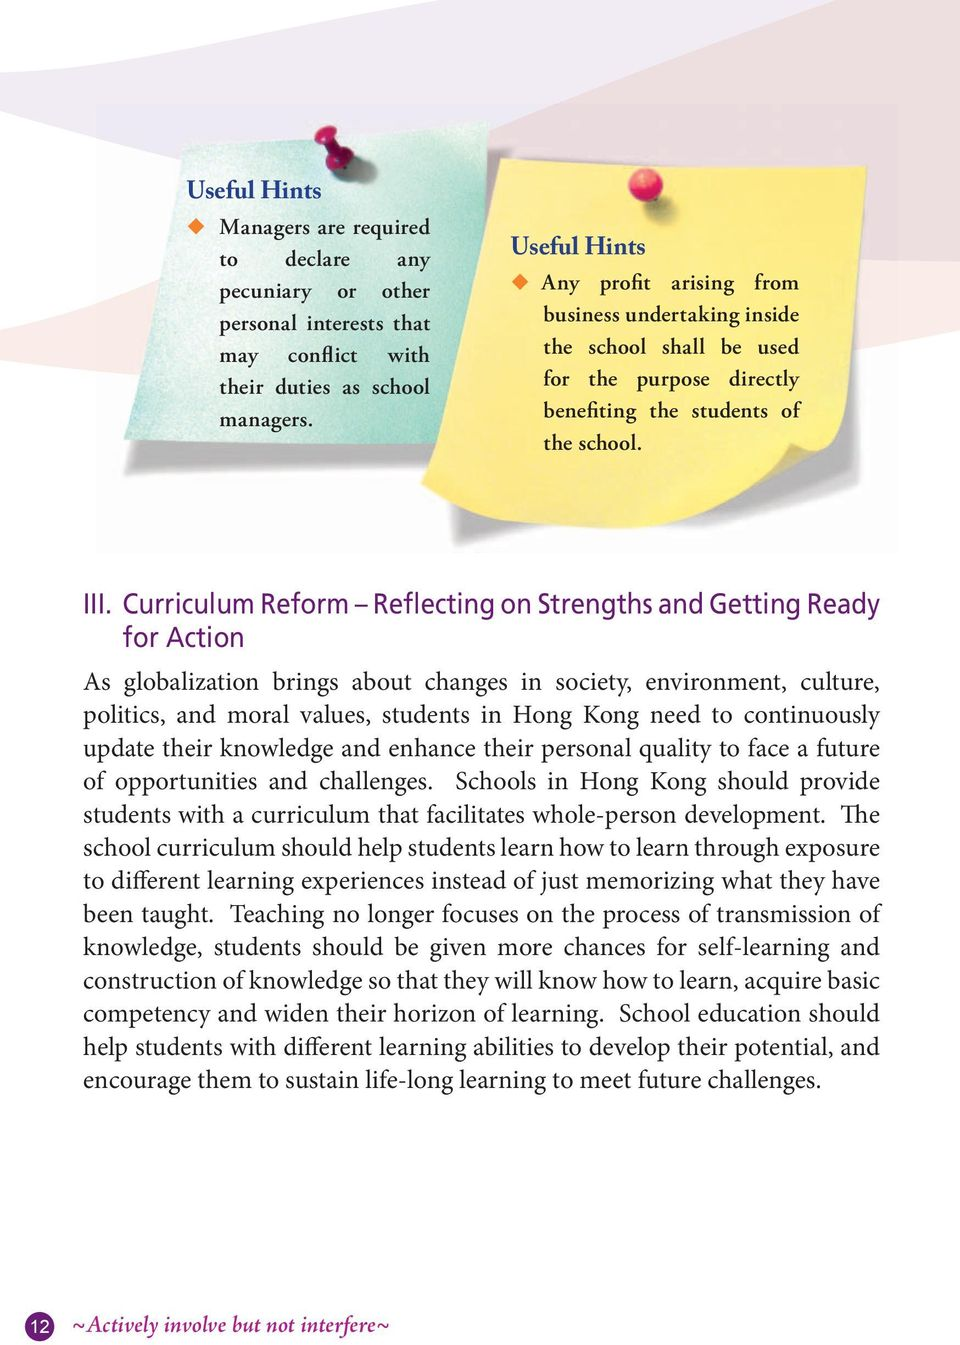 Curriculum Reform Reflecting on Strengths and Getting Ready for Action As globalization brings about changes in society, environment, culture, politics, and moral values, students in Hong Kong need